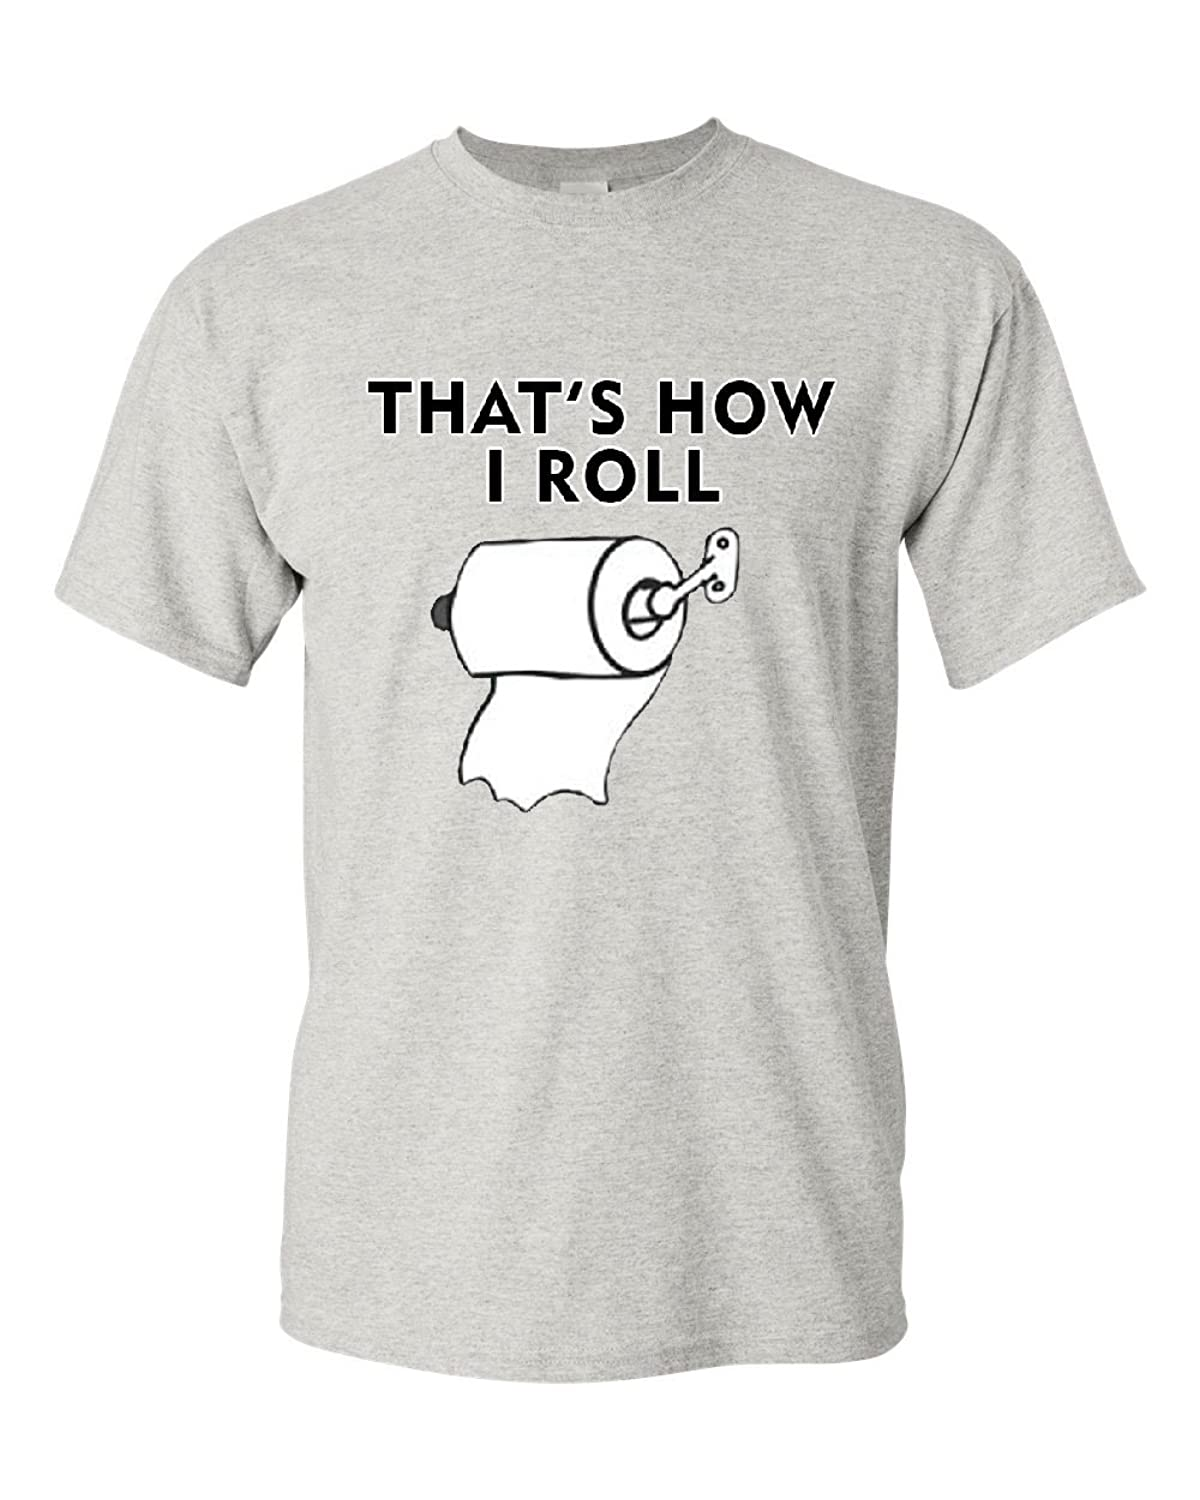 That's How I Roll Funny T-Shirt Toilet Paper Roll Tee Shirt